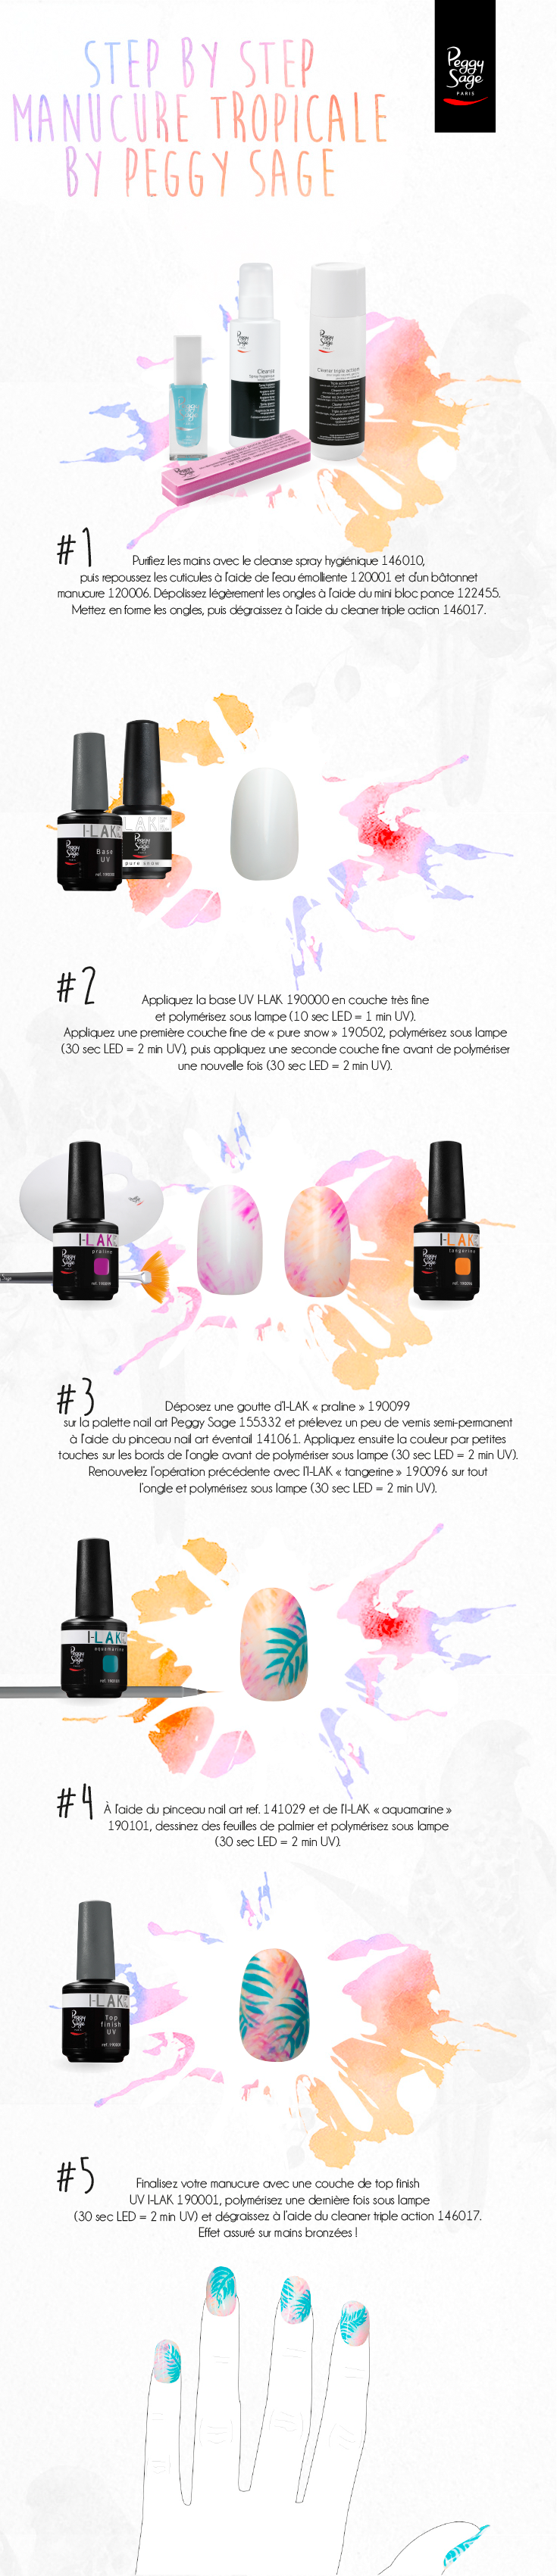 Tuto Nailart Manucure Plage By Peggy Sage Vernis Peggy Sage Manucure Ongles